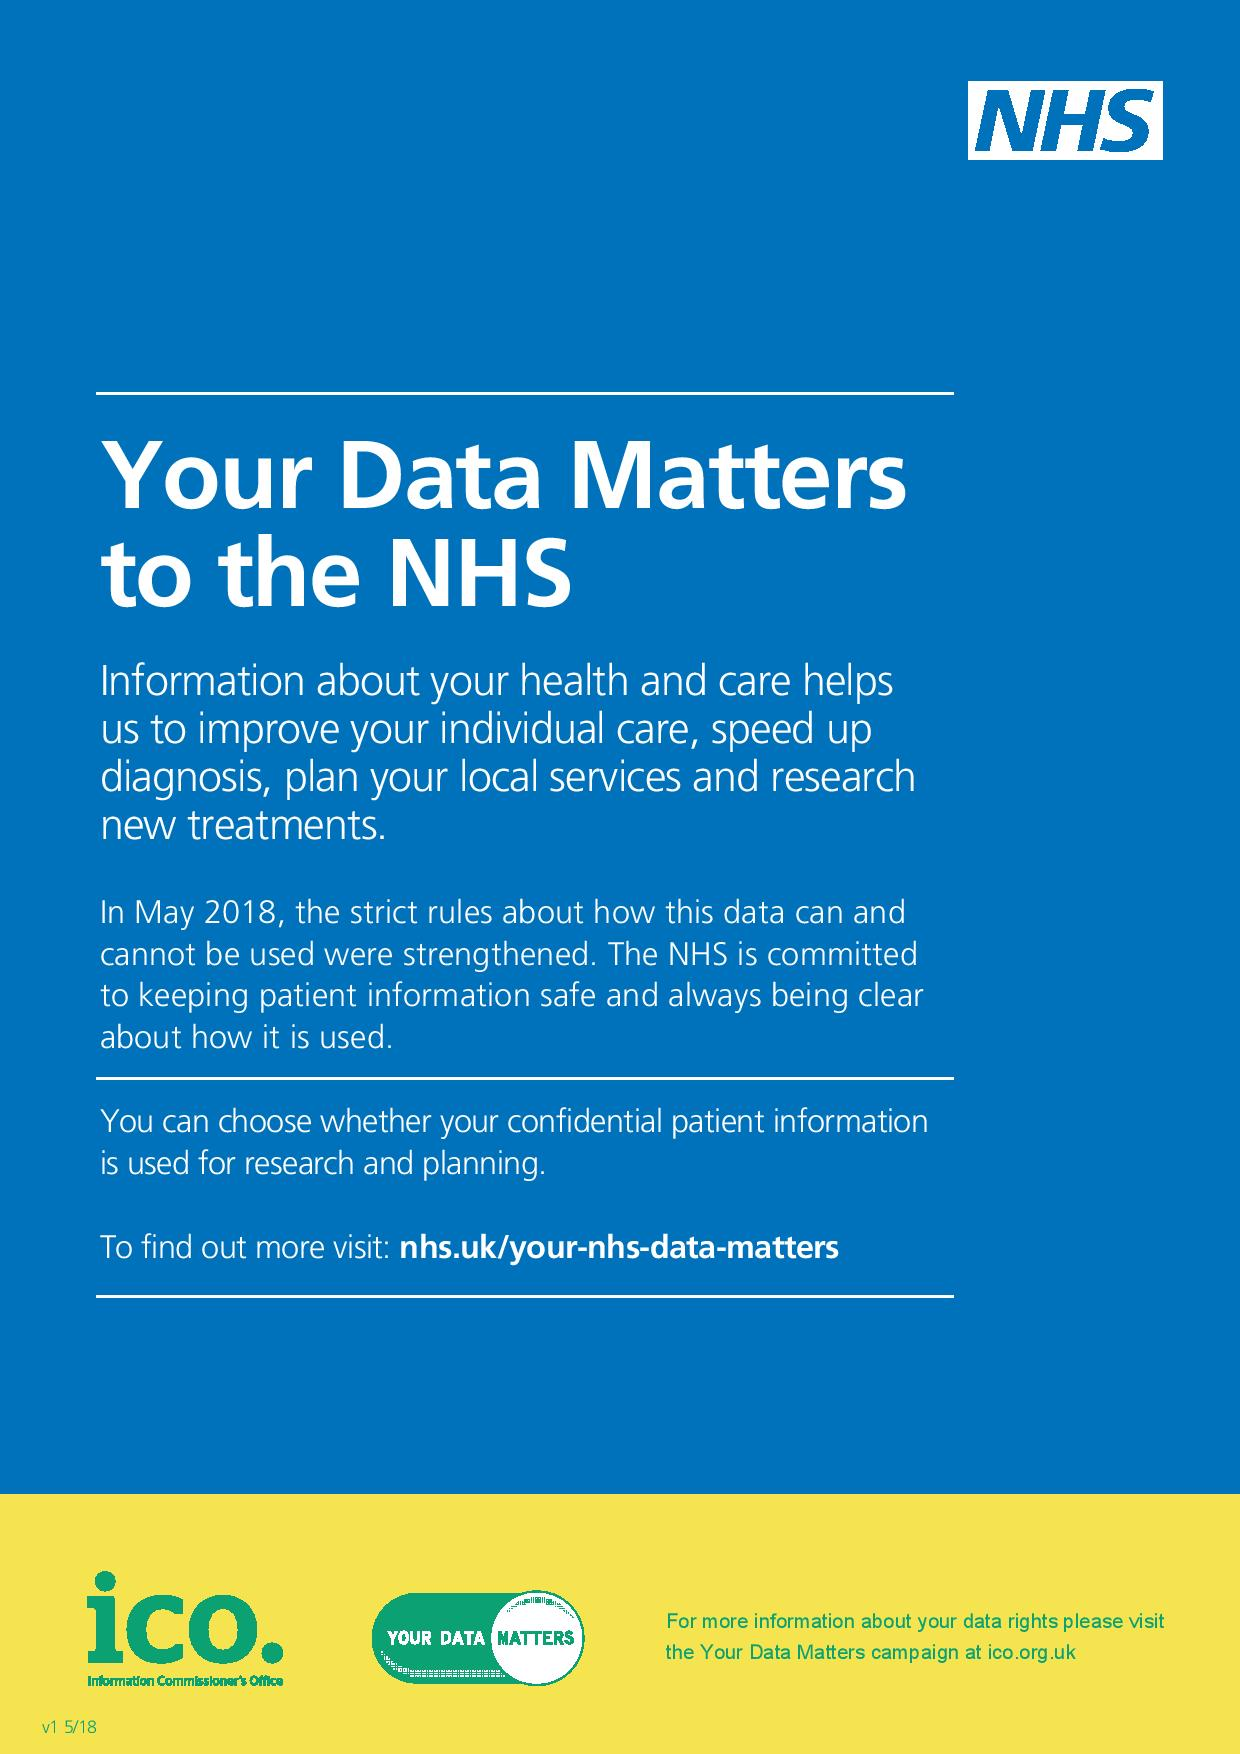 Your Data matters to the NHS. Information about your health and care helps us to improve your individual care, speed up diagnosis, plan your local services and research new treatments. In May 2018, the strict rules about how this data can and cannot be used were strengthened. The NHS is committed to keeping patient information safe and always being clear about how it is used. You can choose whether your confidential patient information is used for research and planning. To find out more visit nhs.uk/your-data-matters